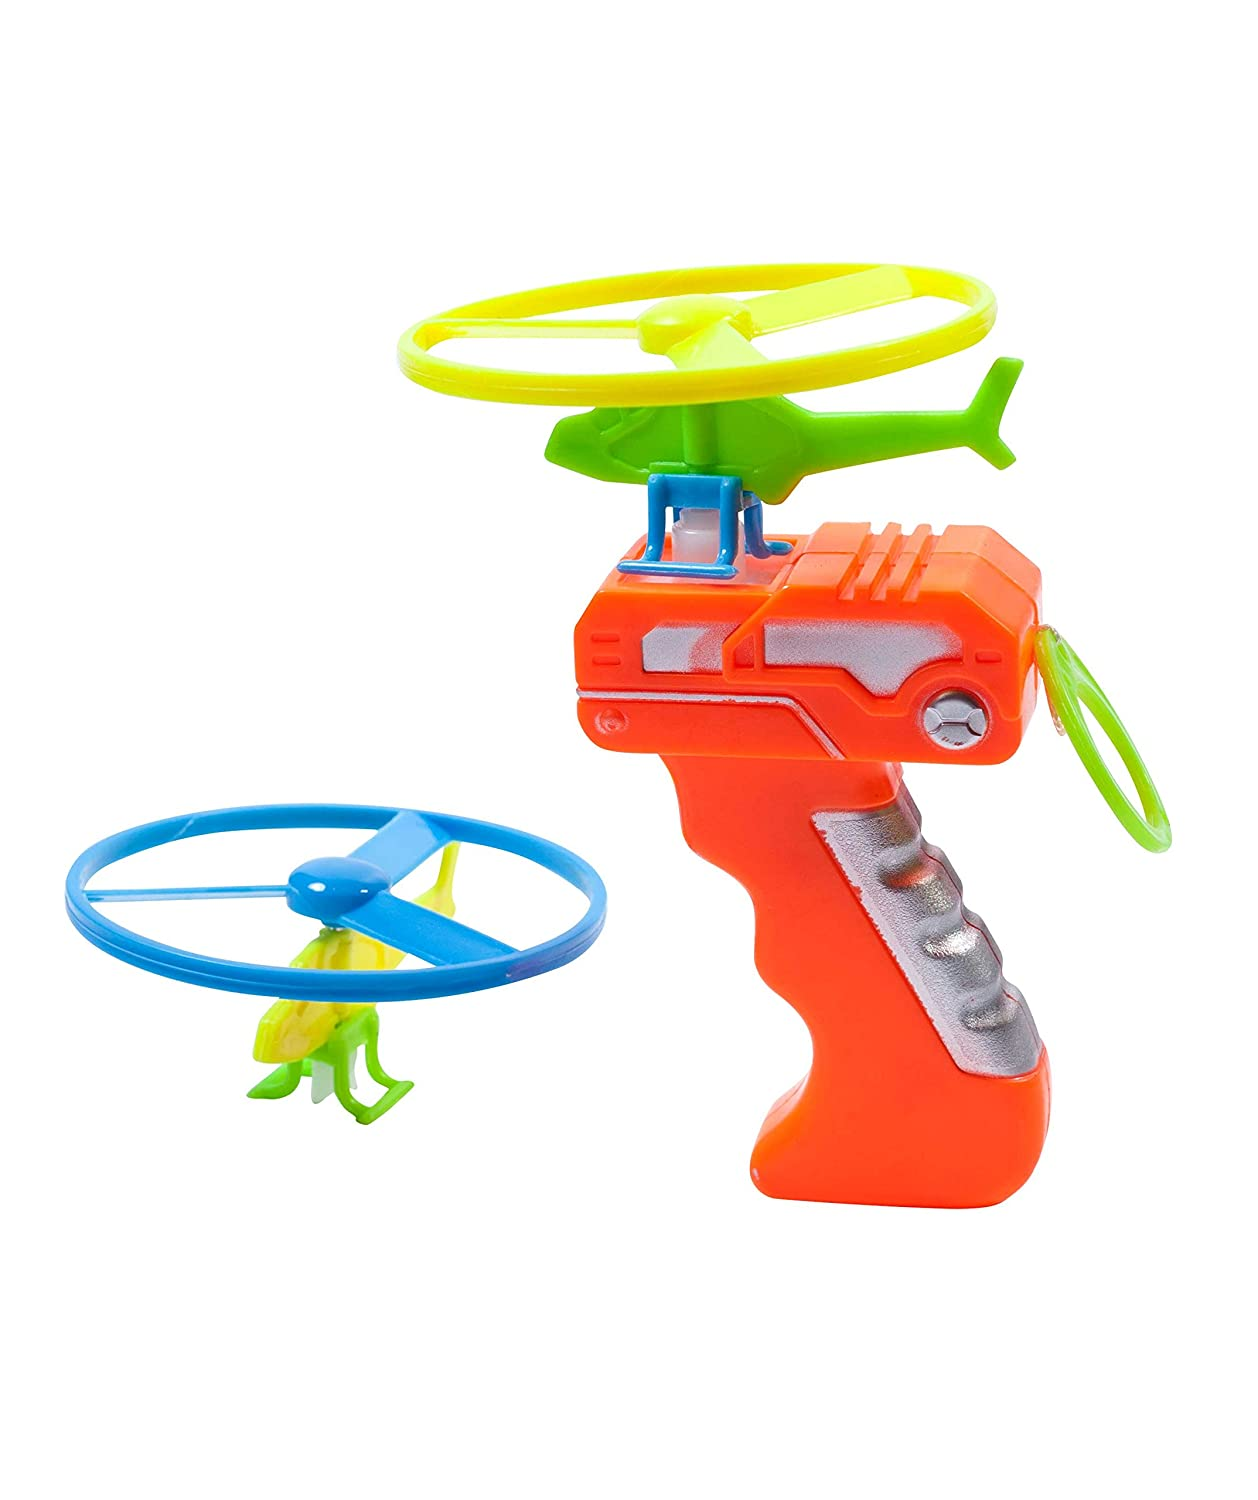 Roto Flyer High Powered Ripcord Helicopter